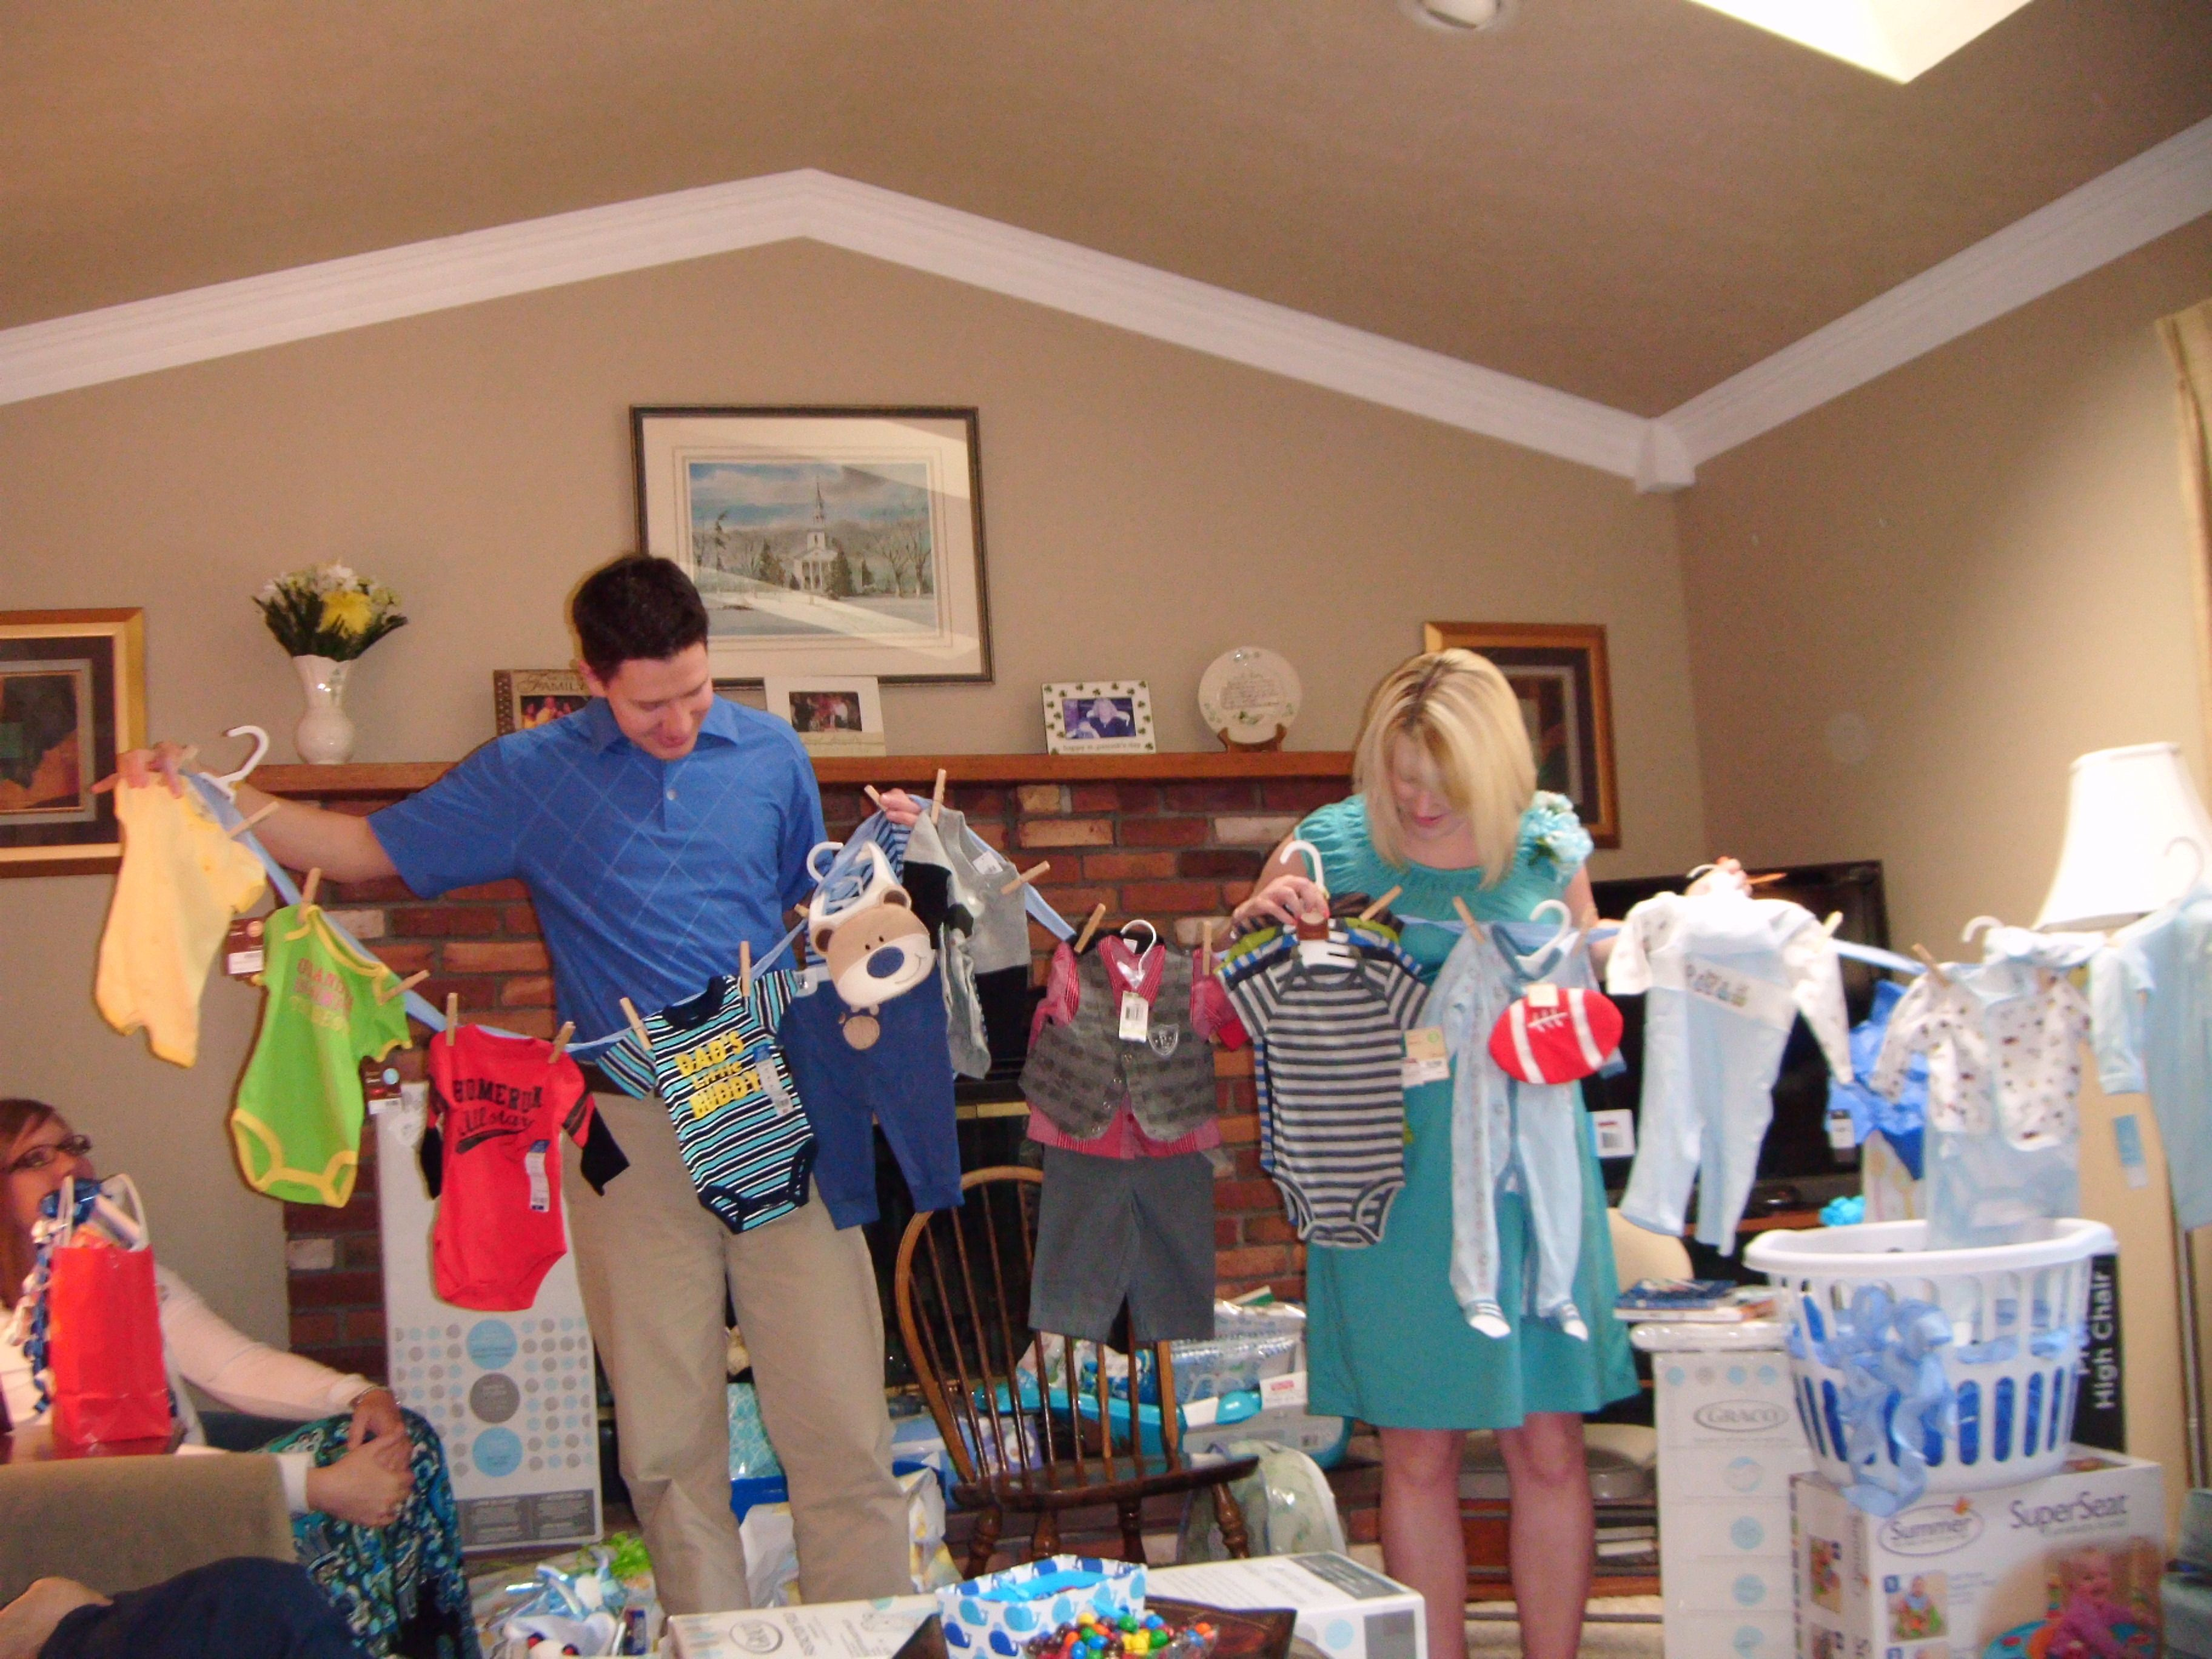 Baby Shower Gift Idea Use Clothespins To Attach Baby Clothes To